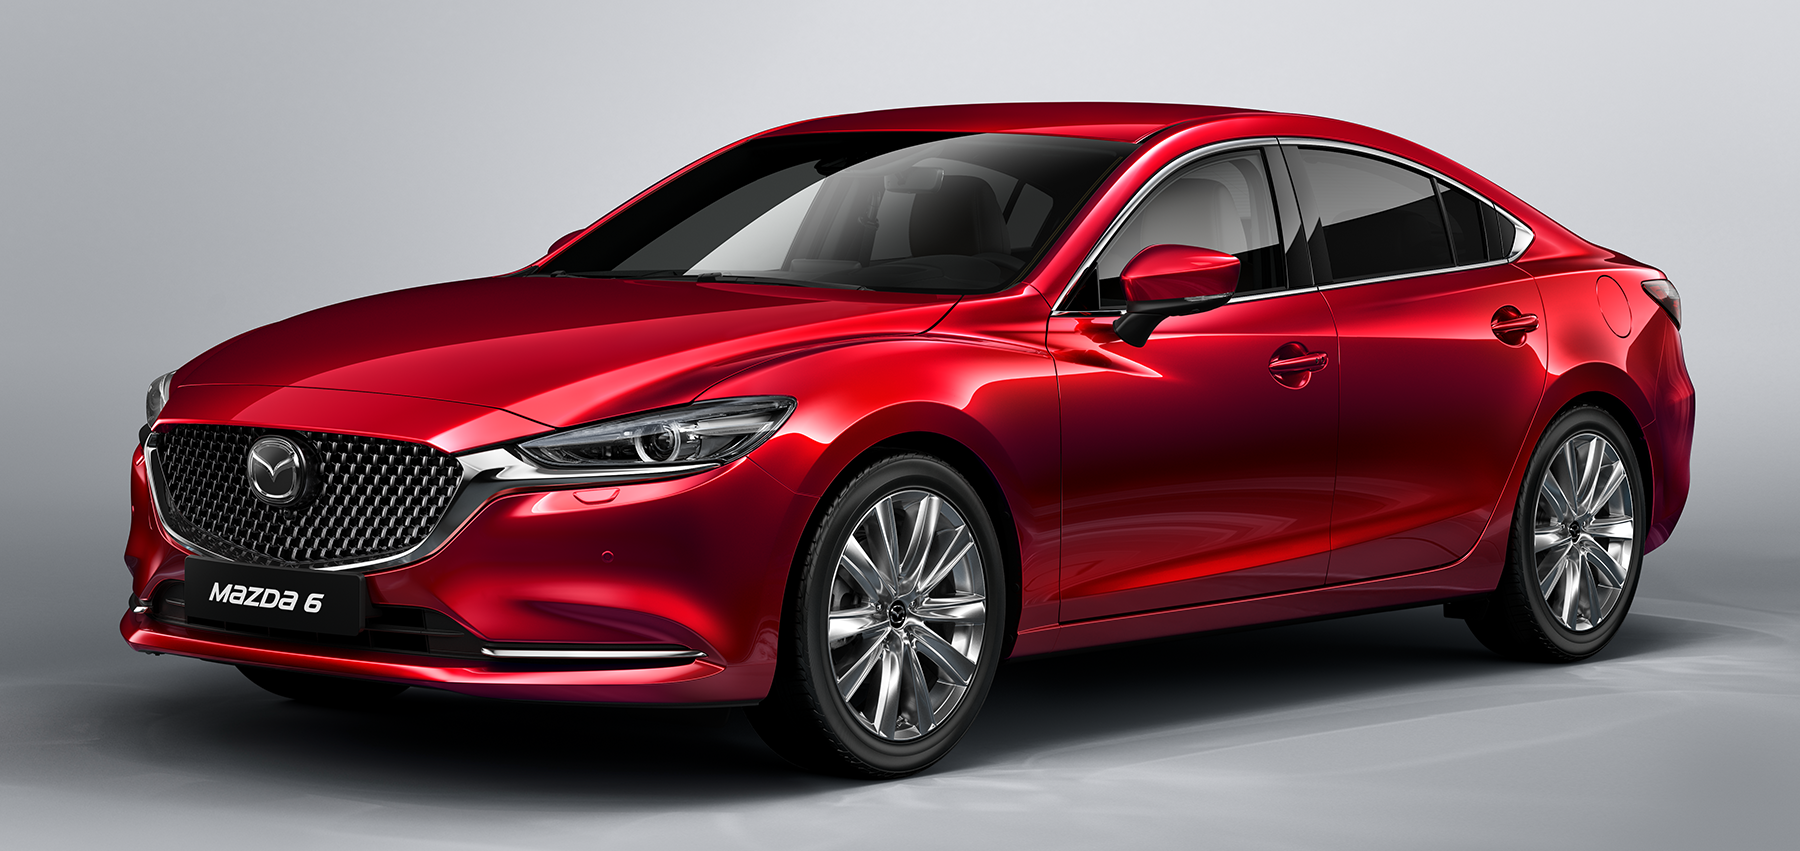 91 The New Mazda 6 2019 Uk Overview Interior by New Mazda 6 2019 Uk Overview